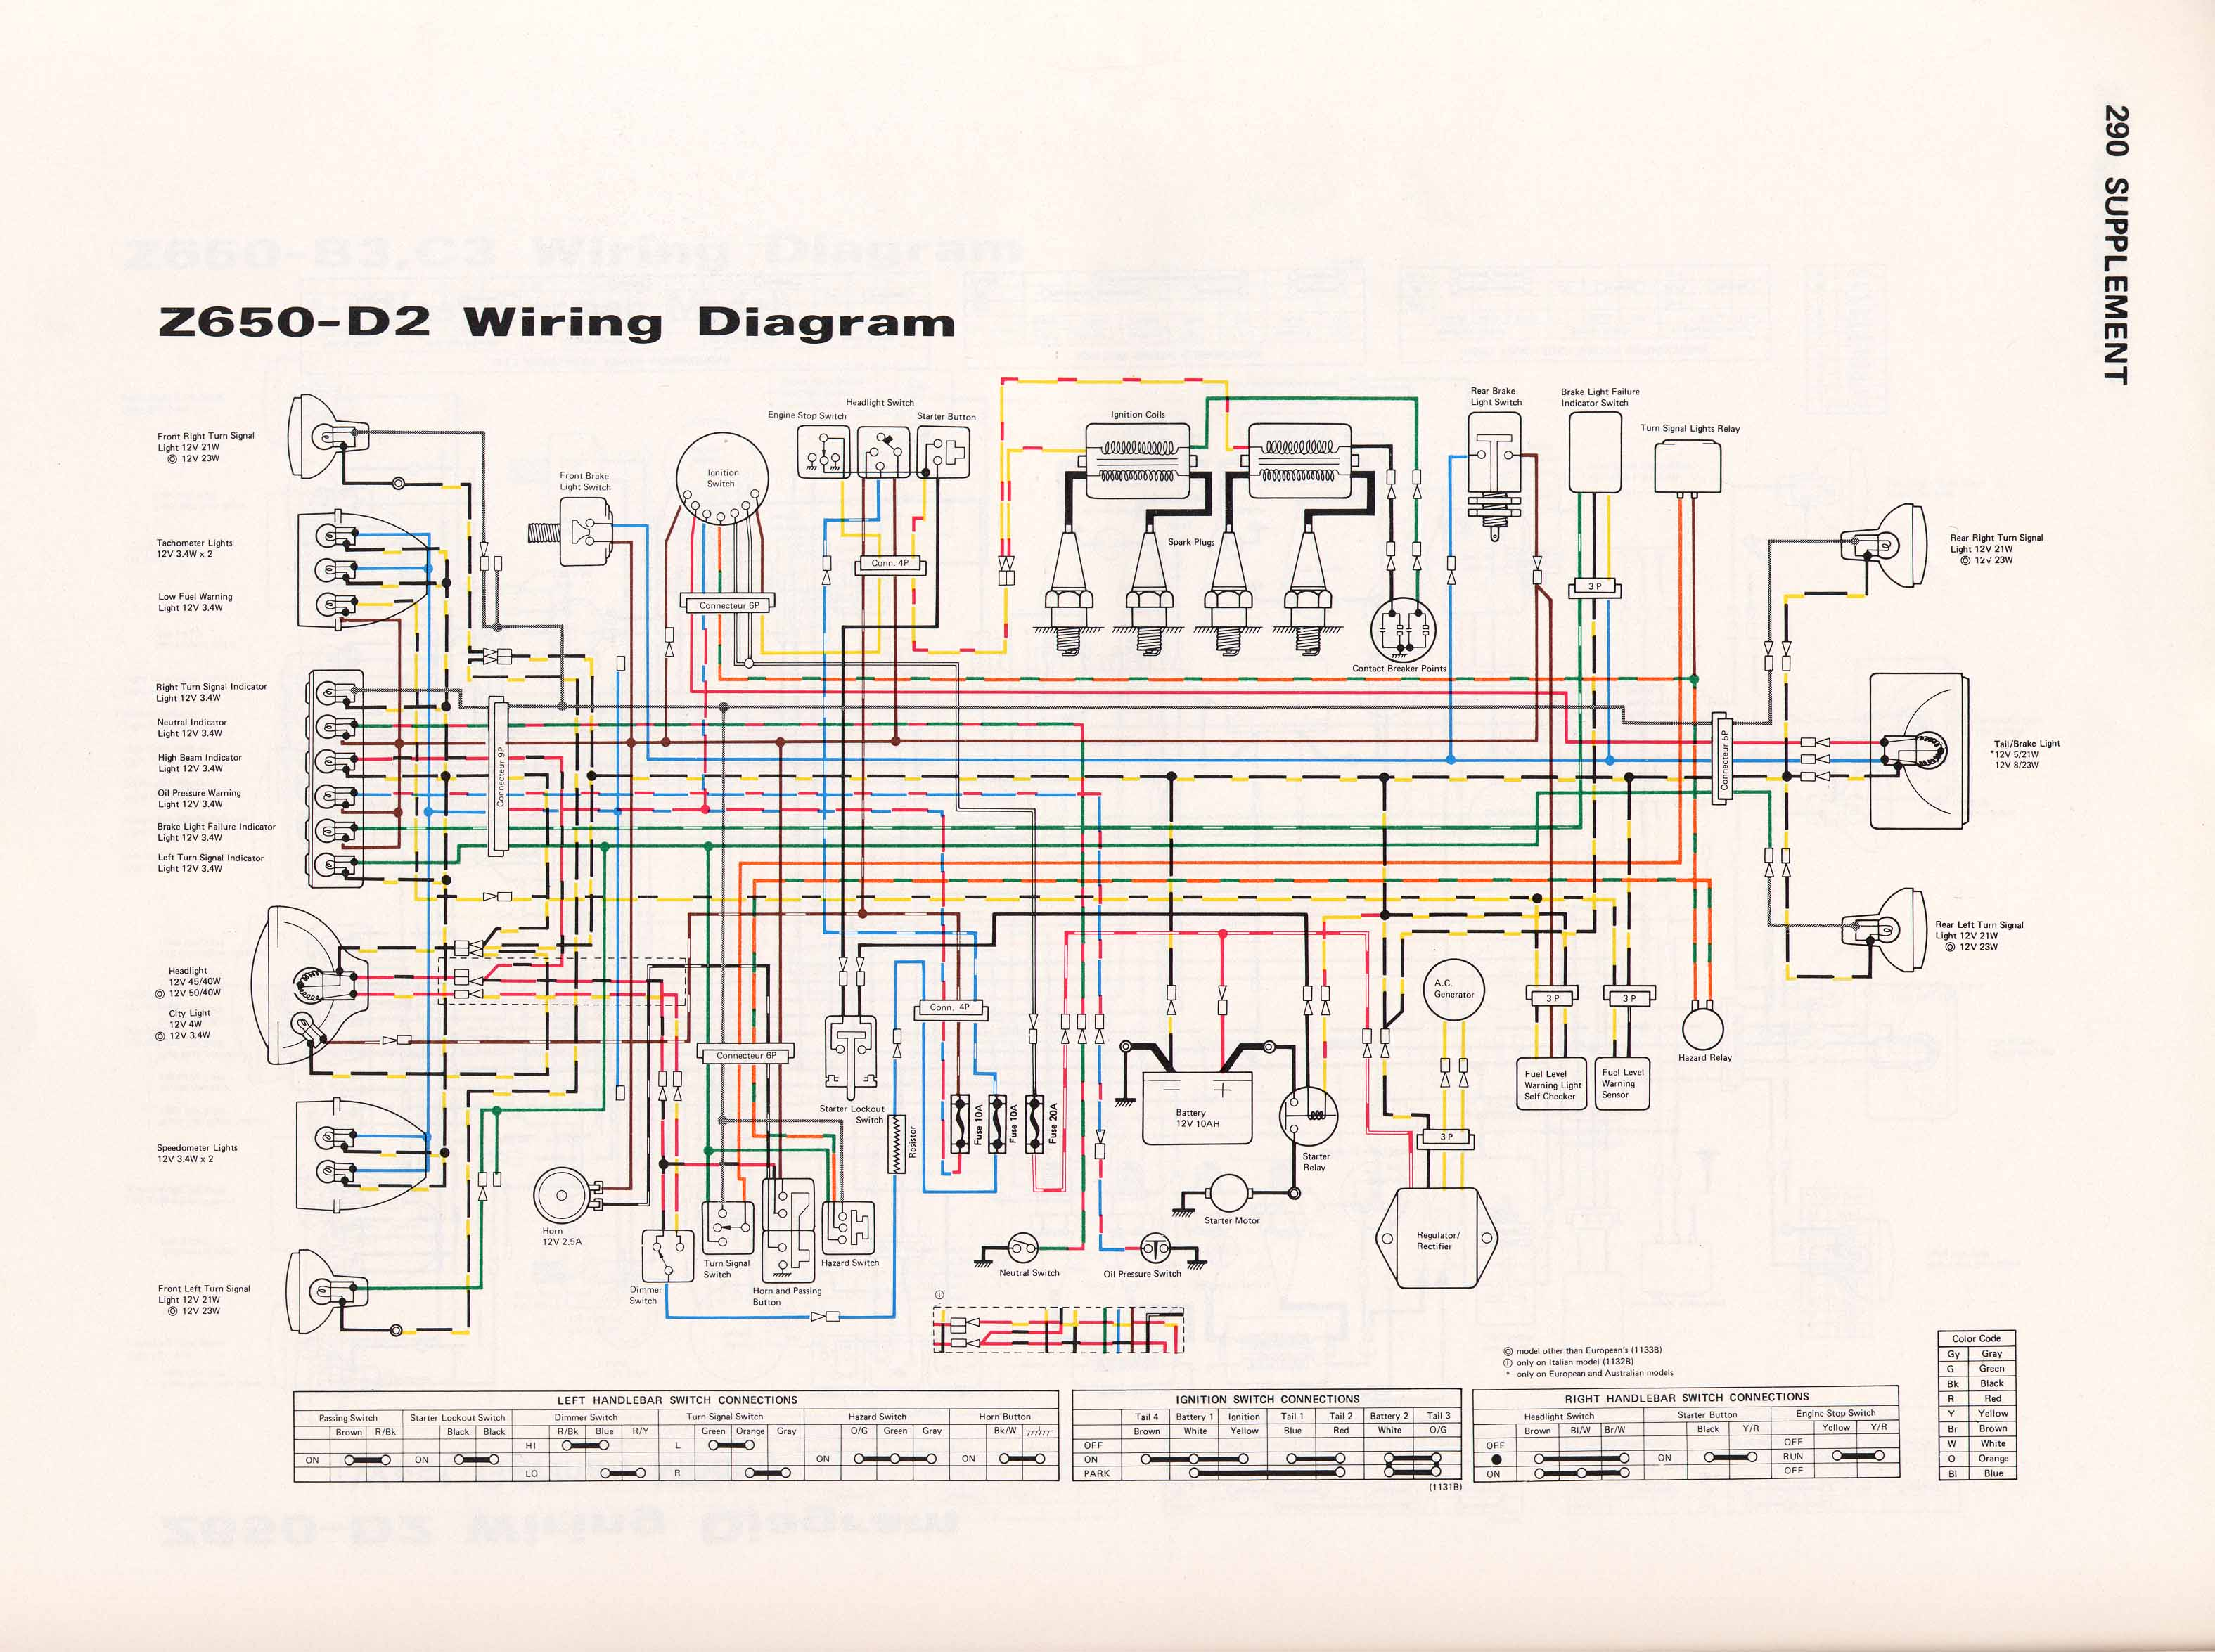 Kz650 Wiring Diagram from diagrams.kz650.info